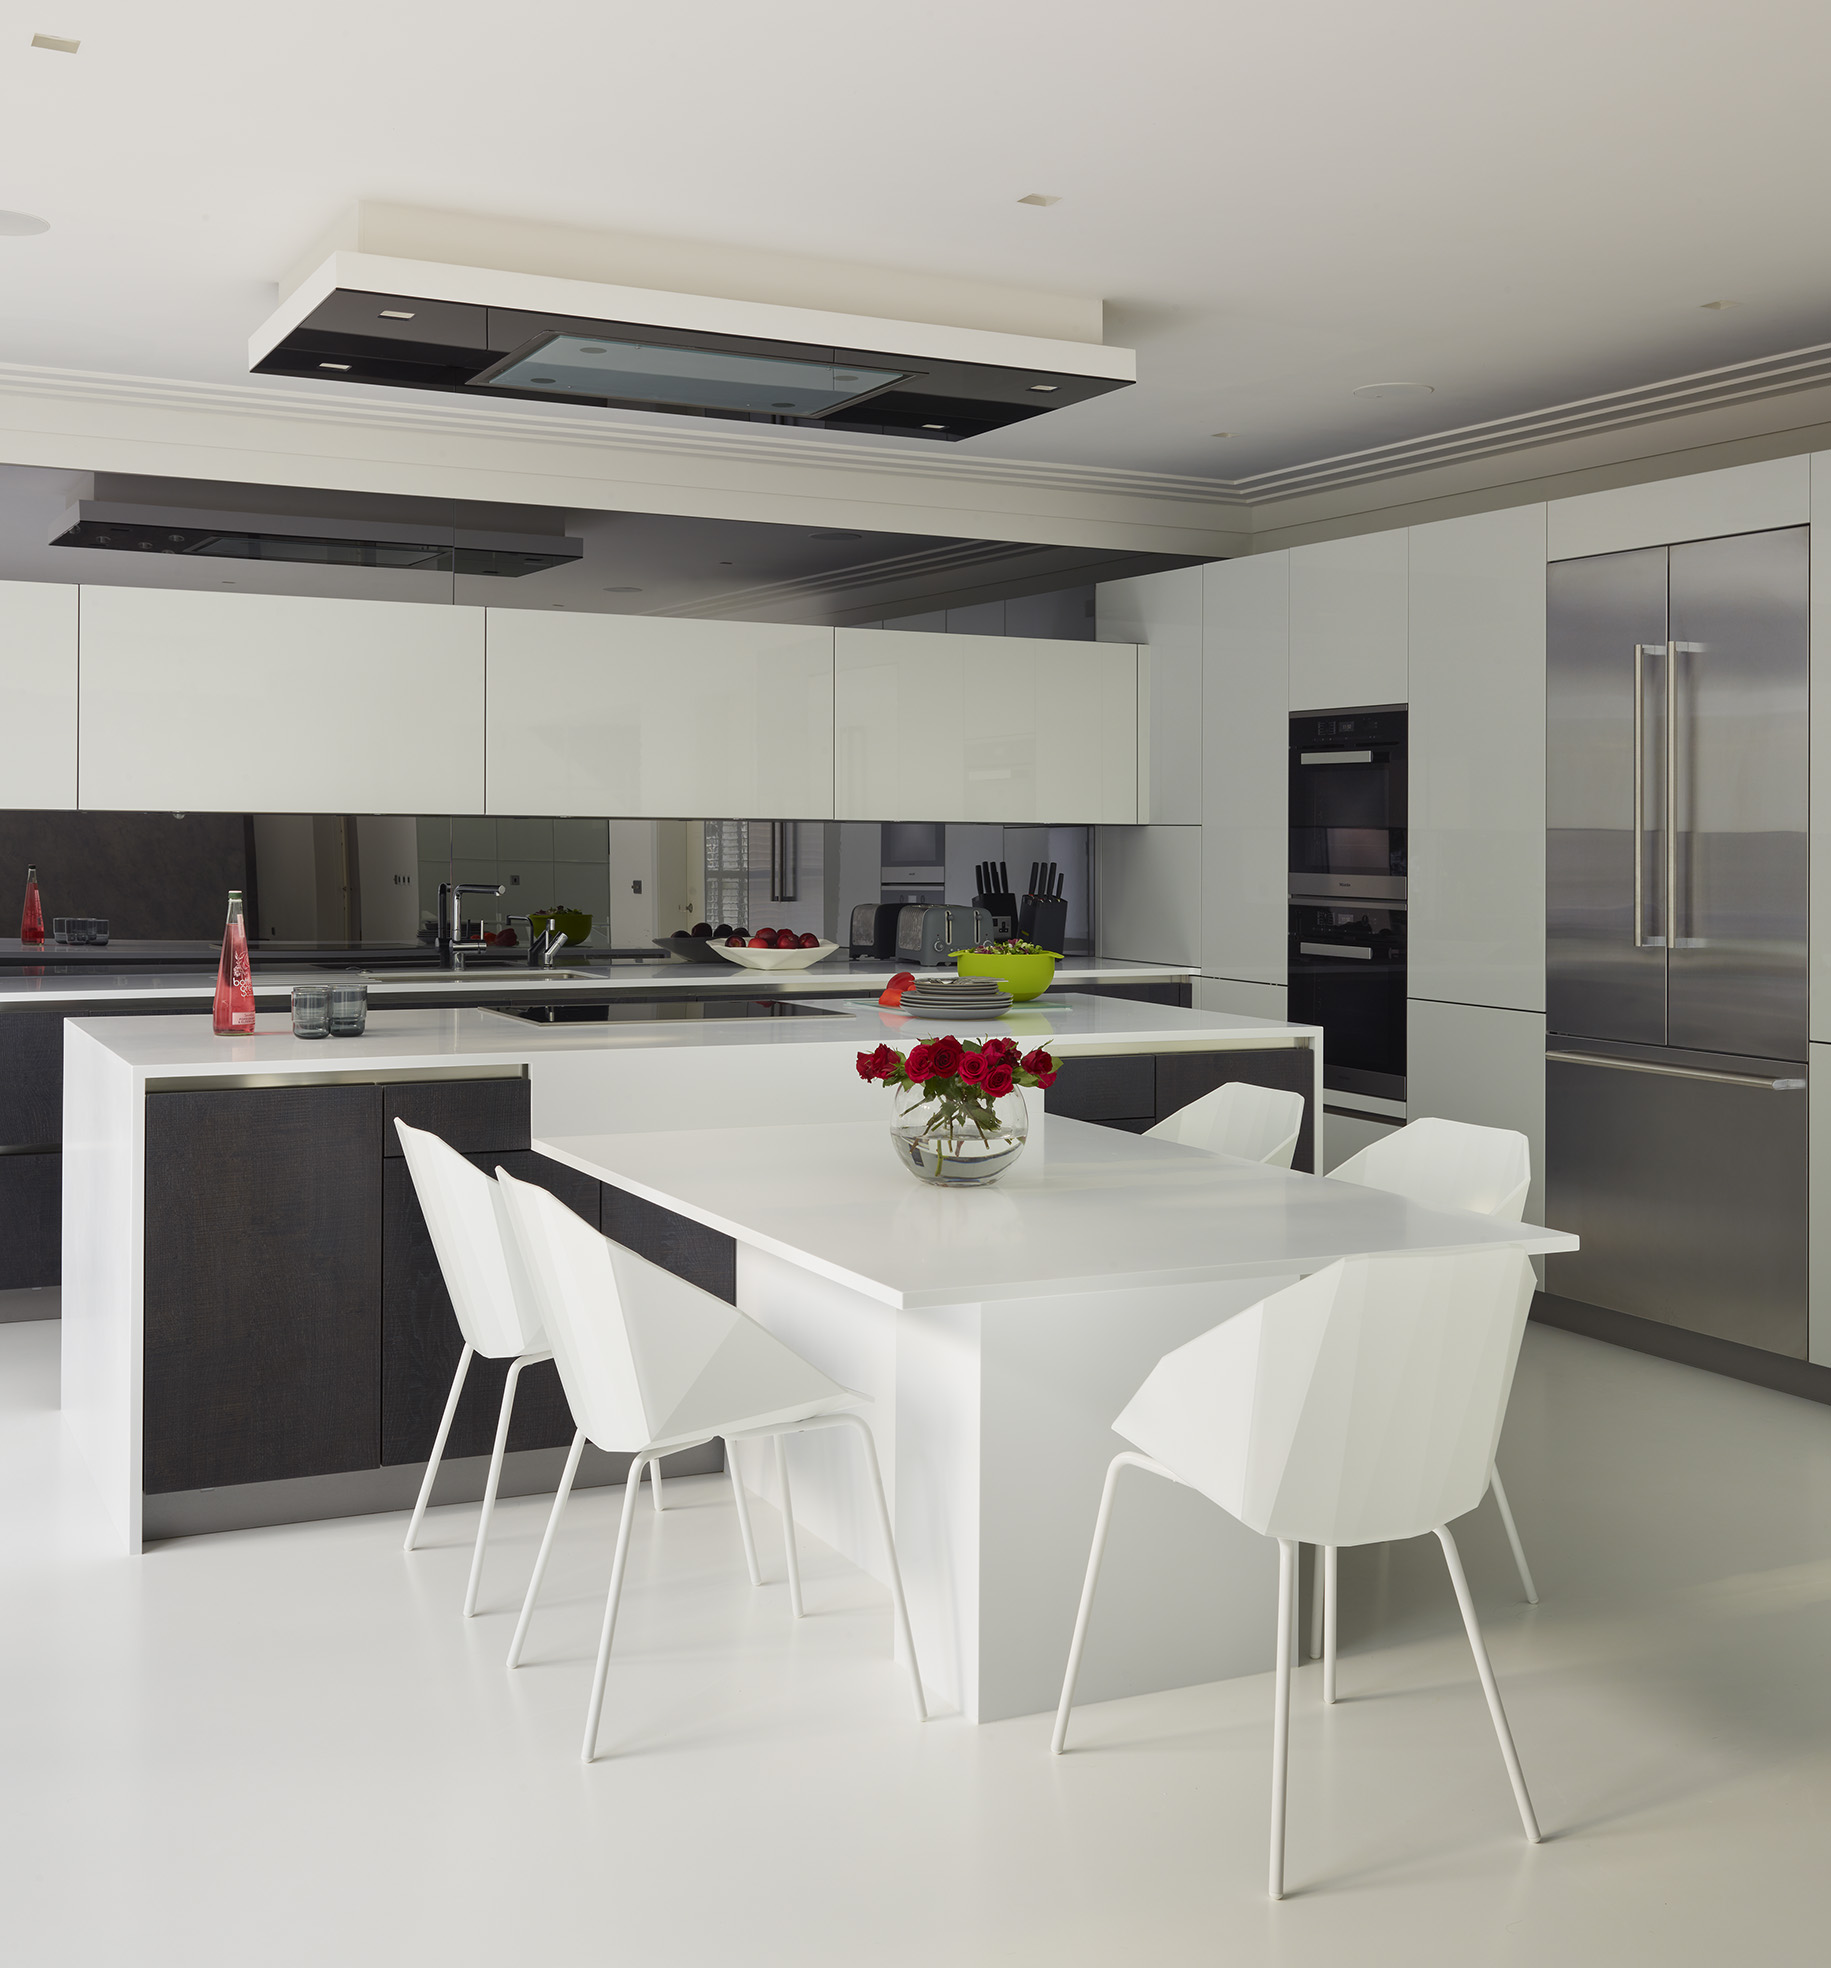 New Modern Kitchens At Neil Lerner: Clutter Free Family Kitchens